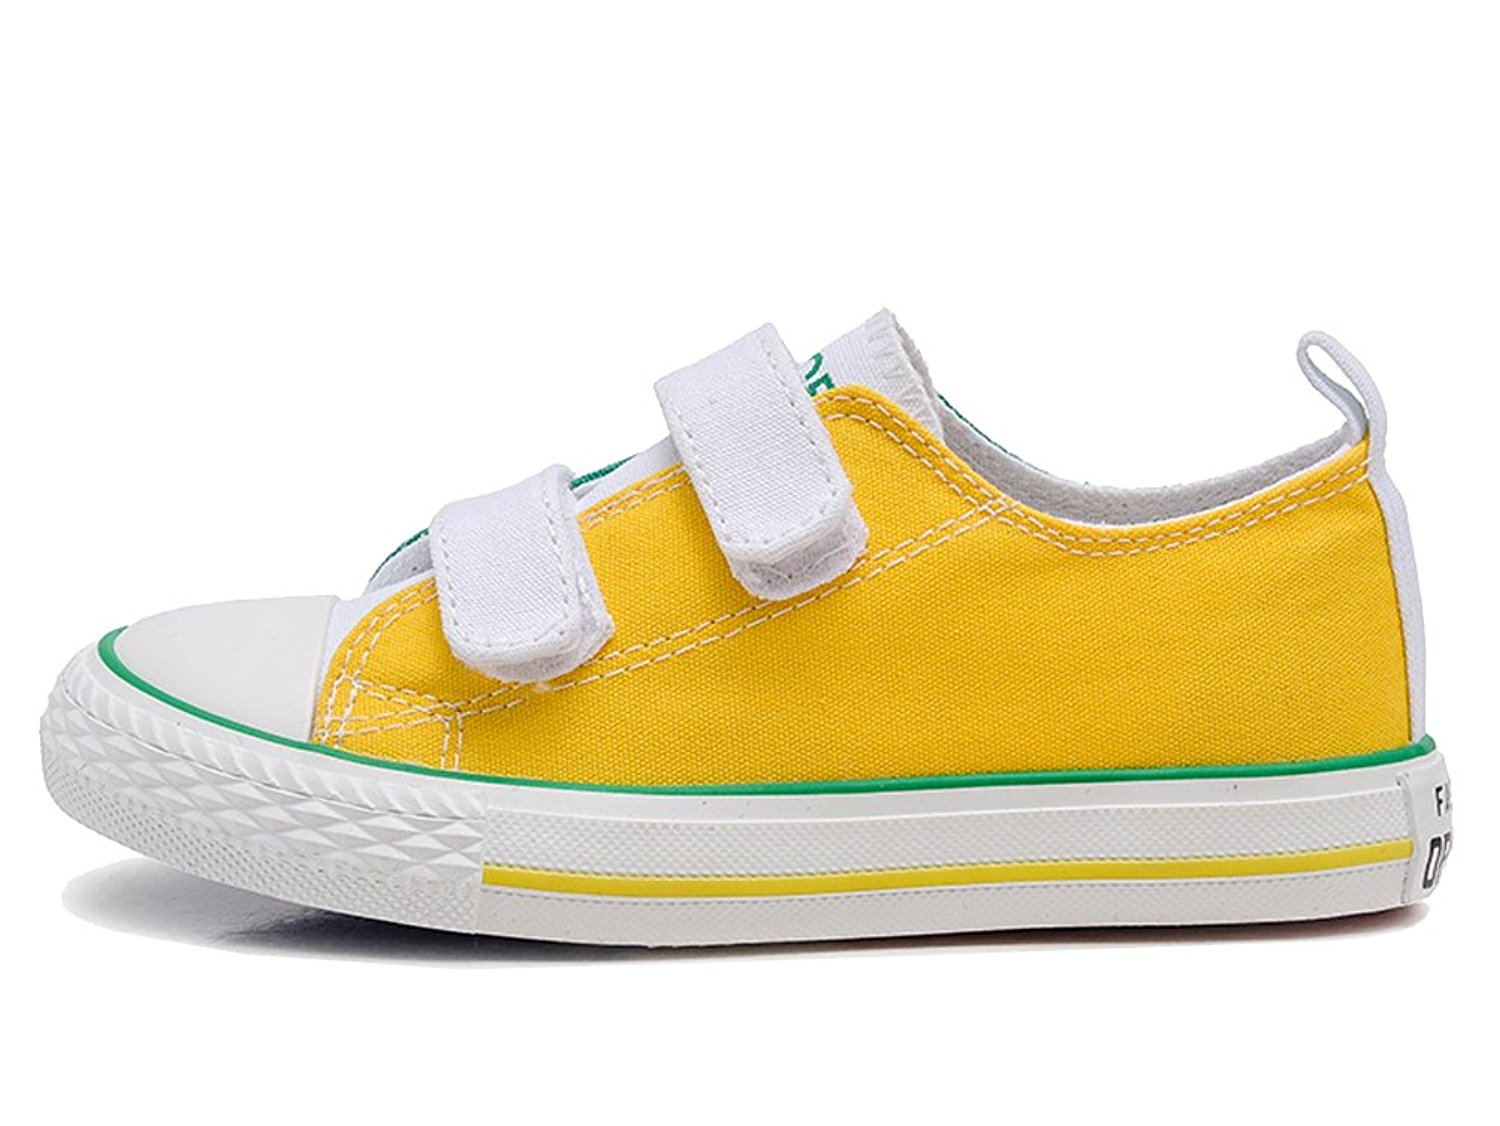 iDuoDuo Kids Contrast Color Fashion Canvas Shoes School Sport Sneakers (Toddler/Little Kid/Big Kid)